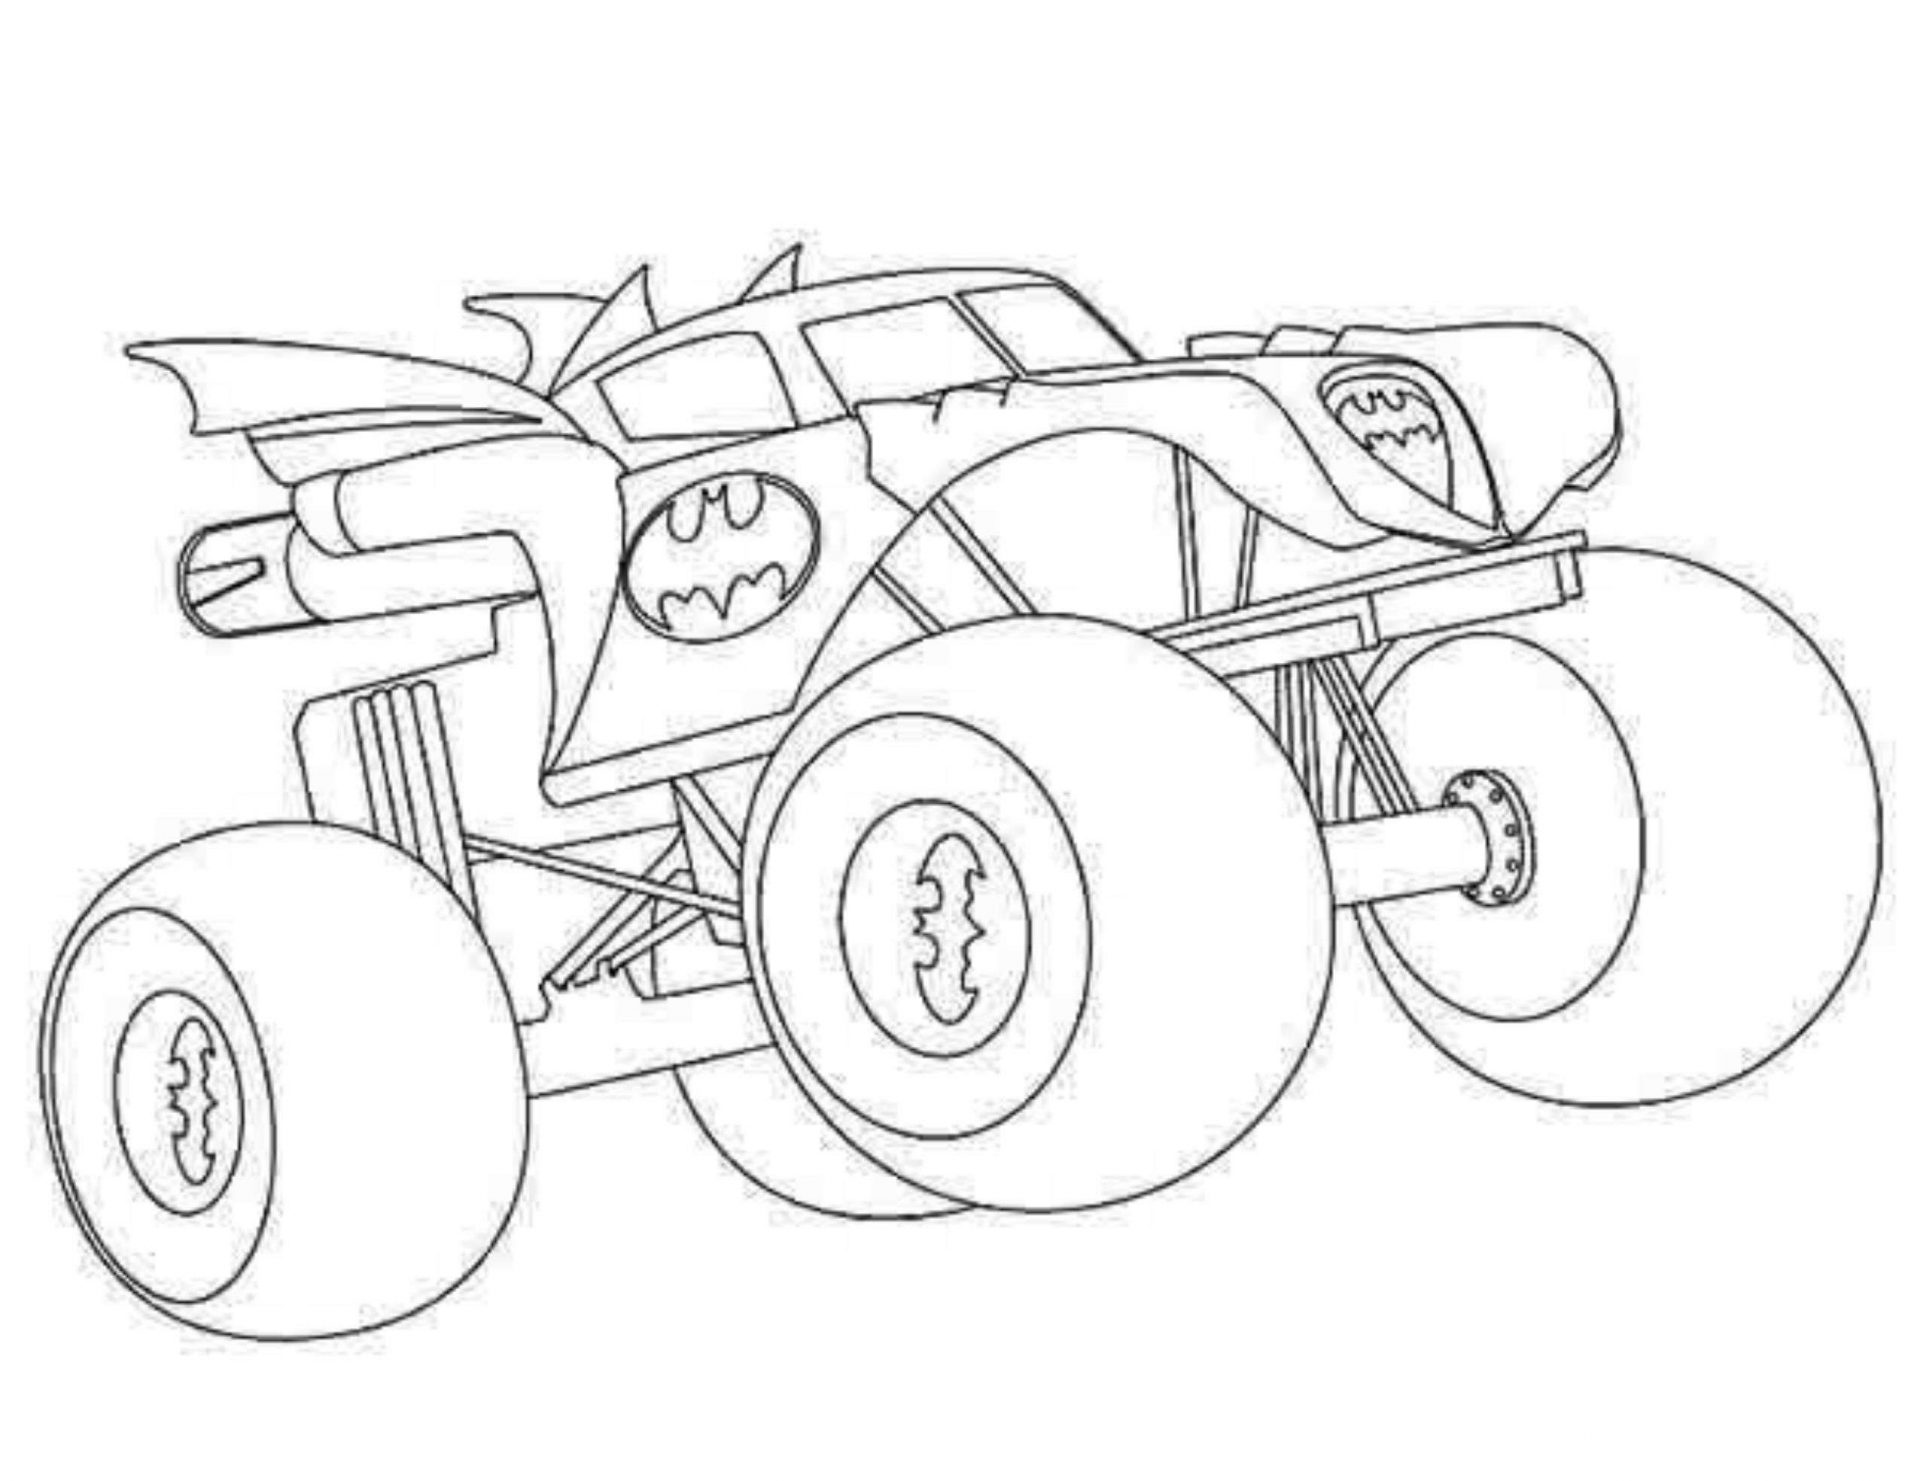 1920x1481 Truck Coloring Pages Photos High Fire Page Free Printable Pdf High